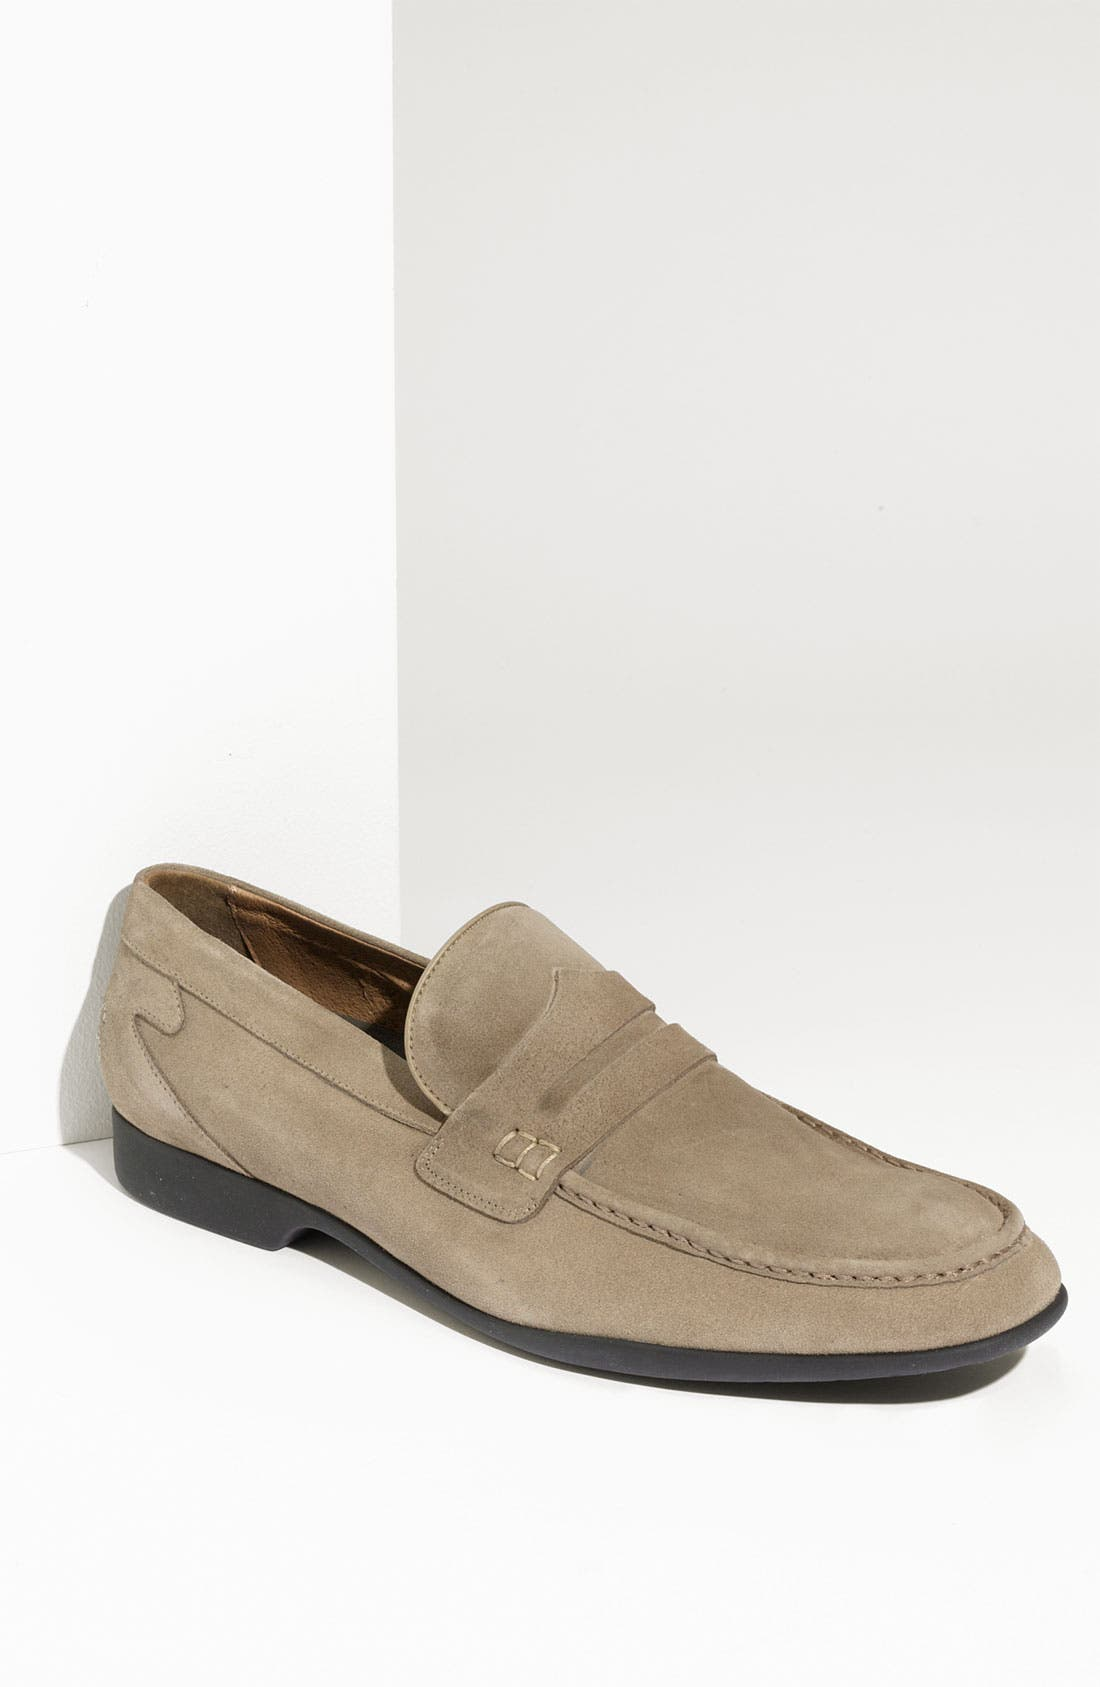 Alternate Image 1 Selected - Oliver Sweeney 'Mclean' Travel Loafer